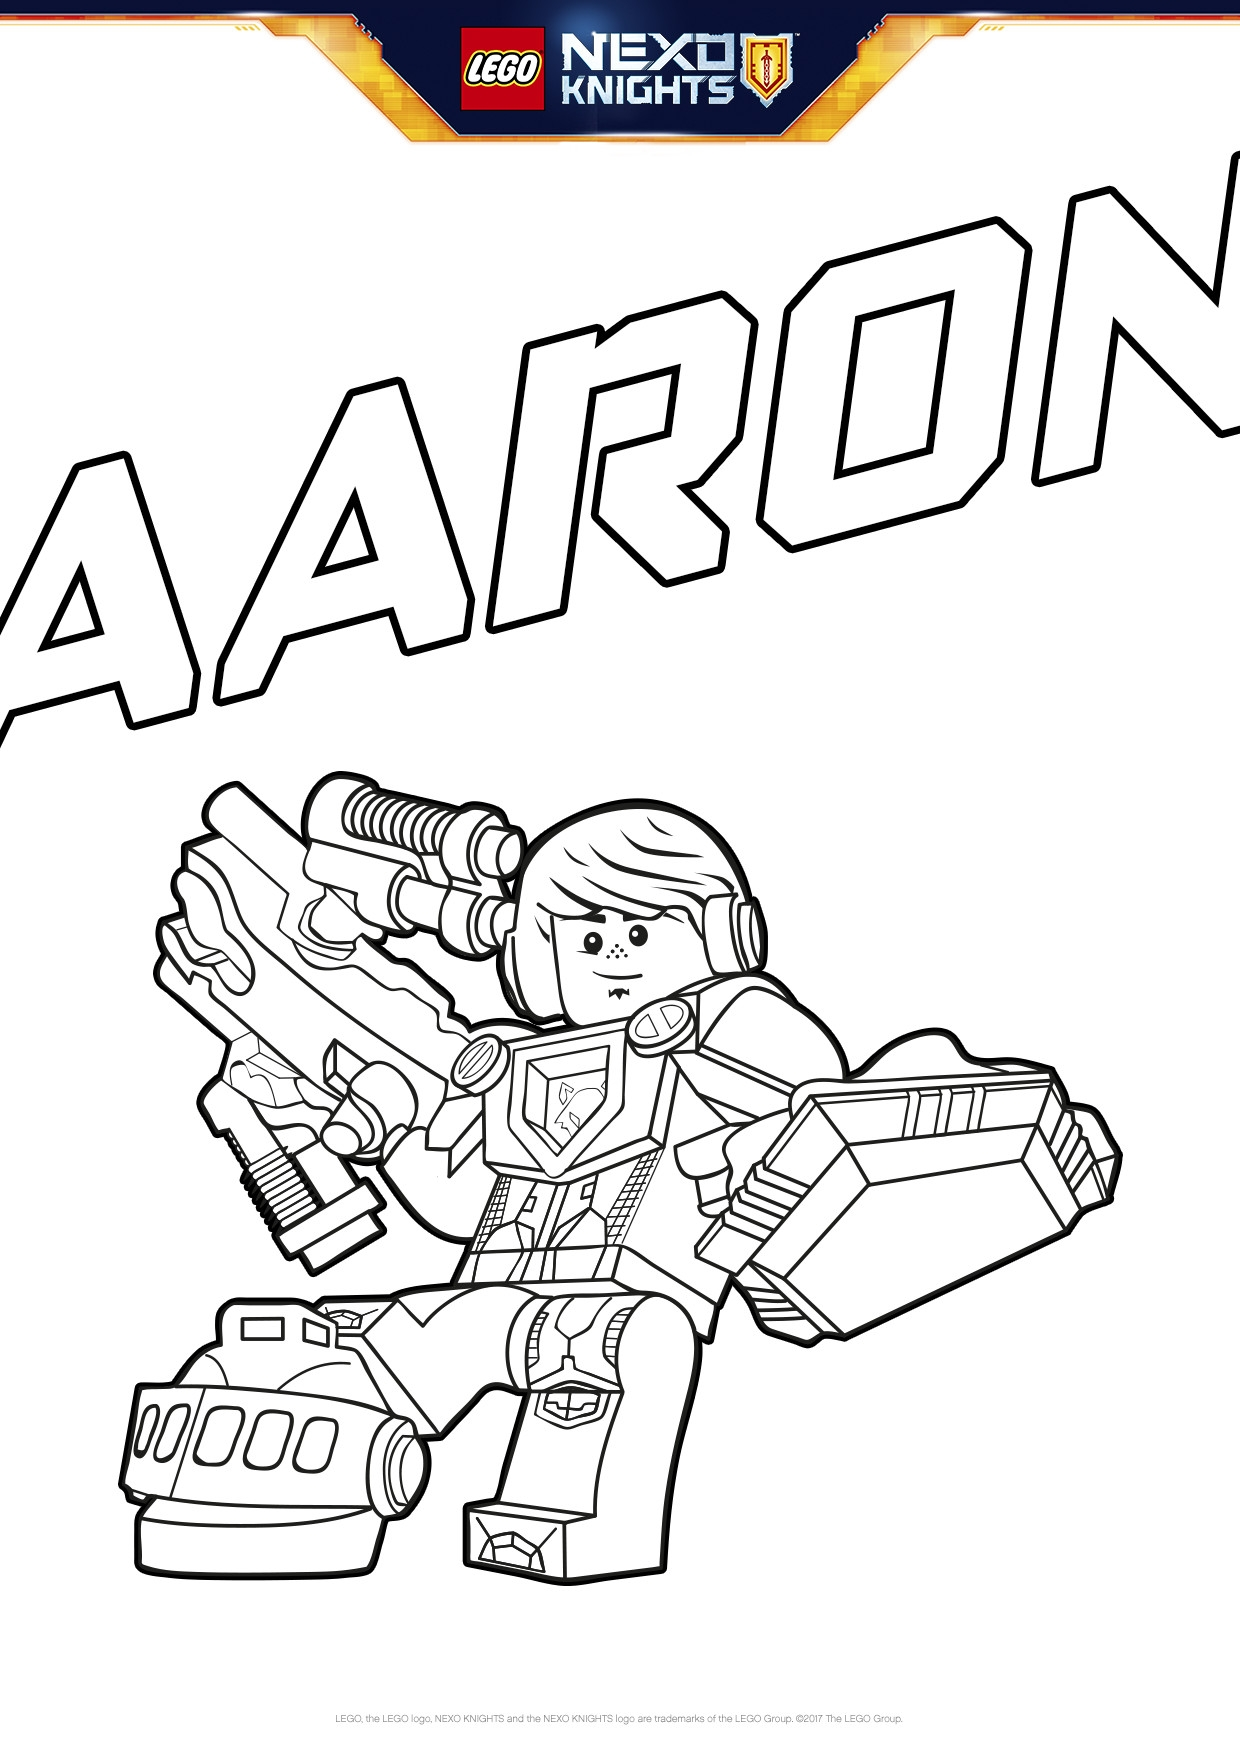 Nexo Knights Ausmalbilder Jestro : 24 Nexo Knight Coloring Pages Images Free Coloring Pages Part 2